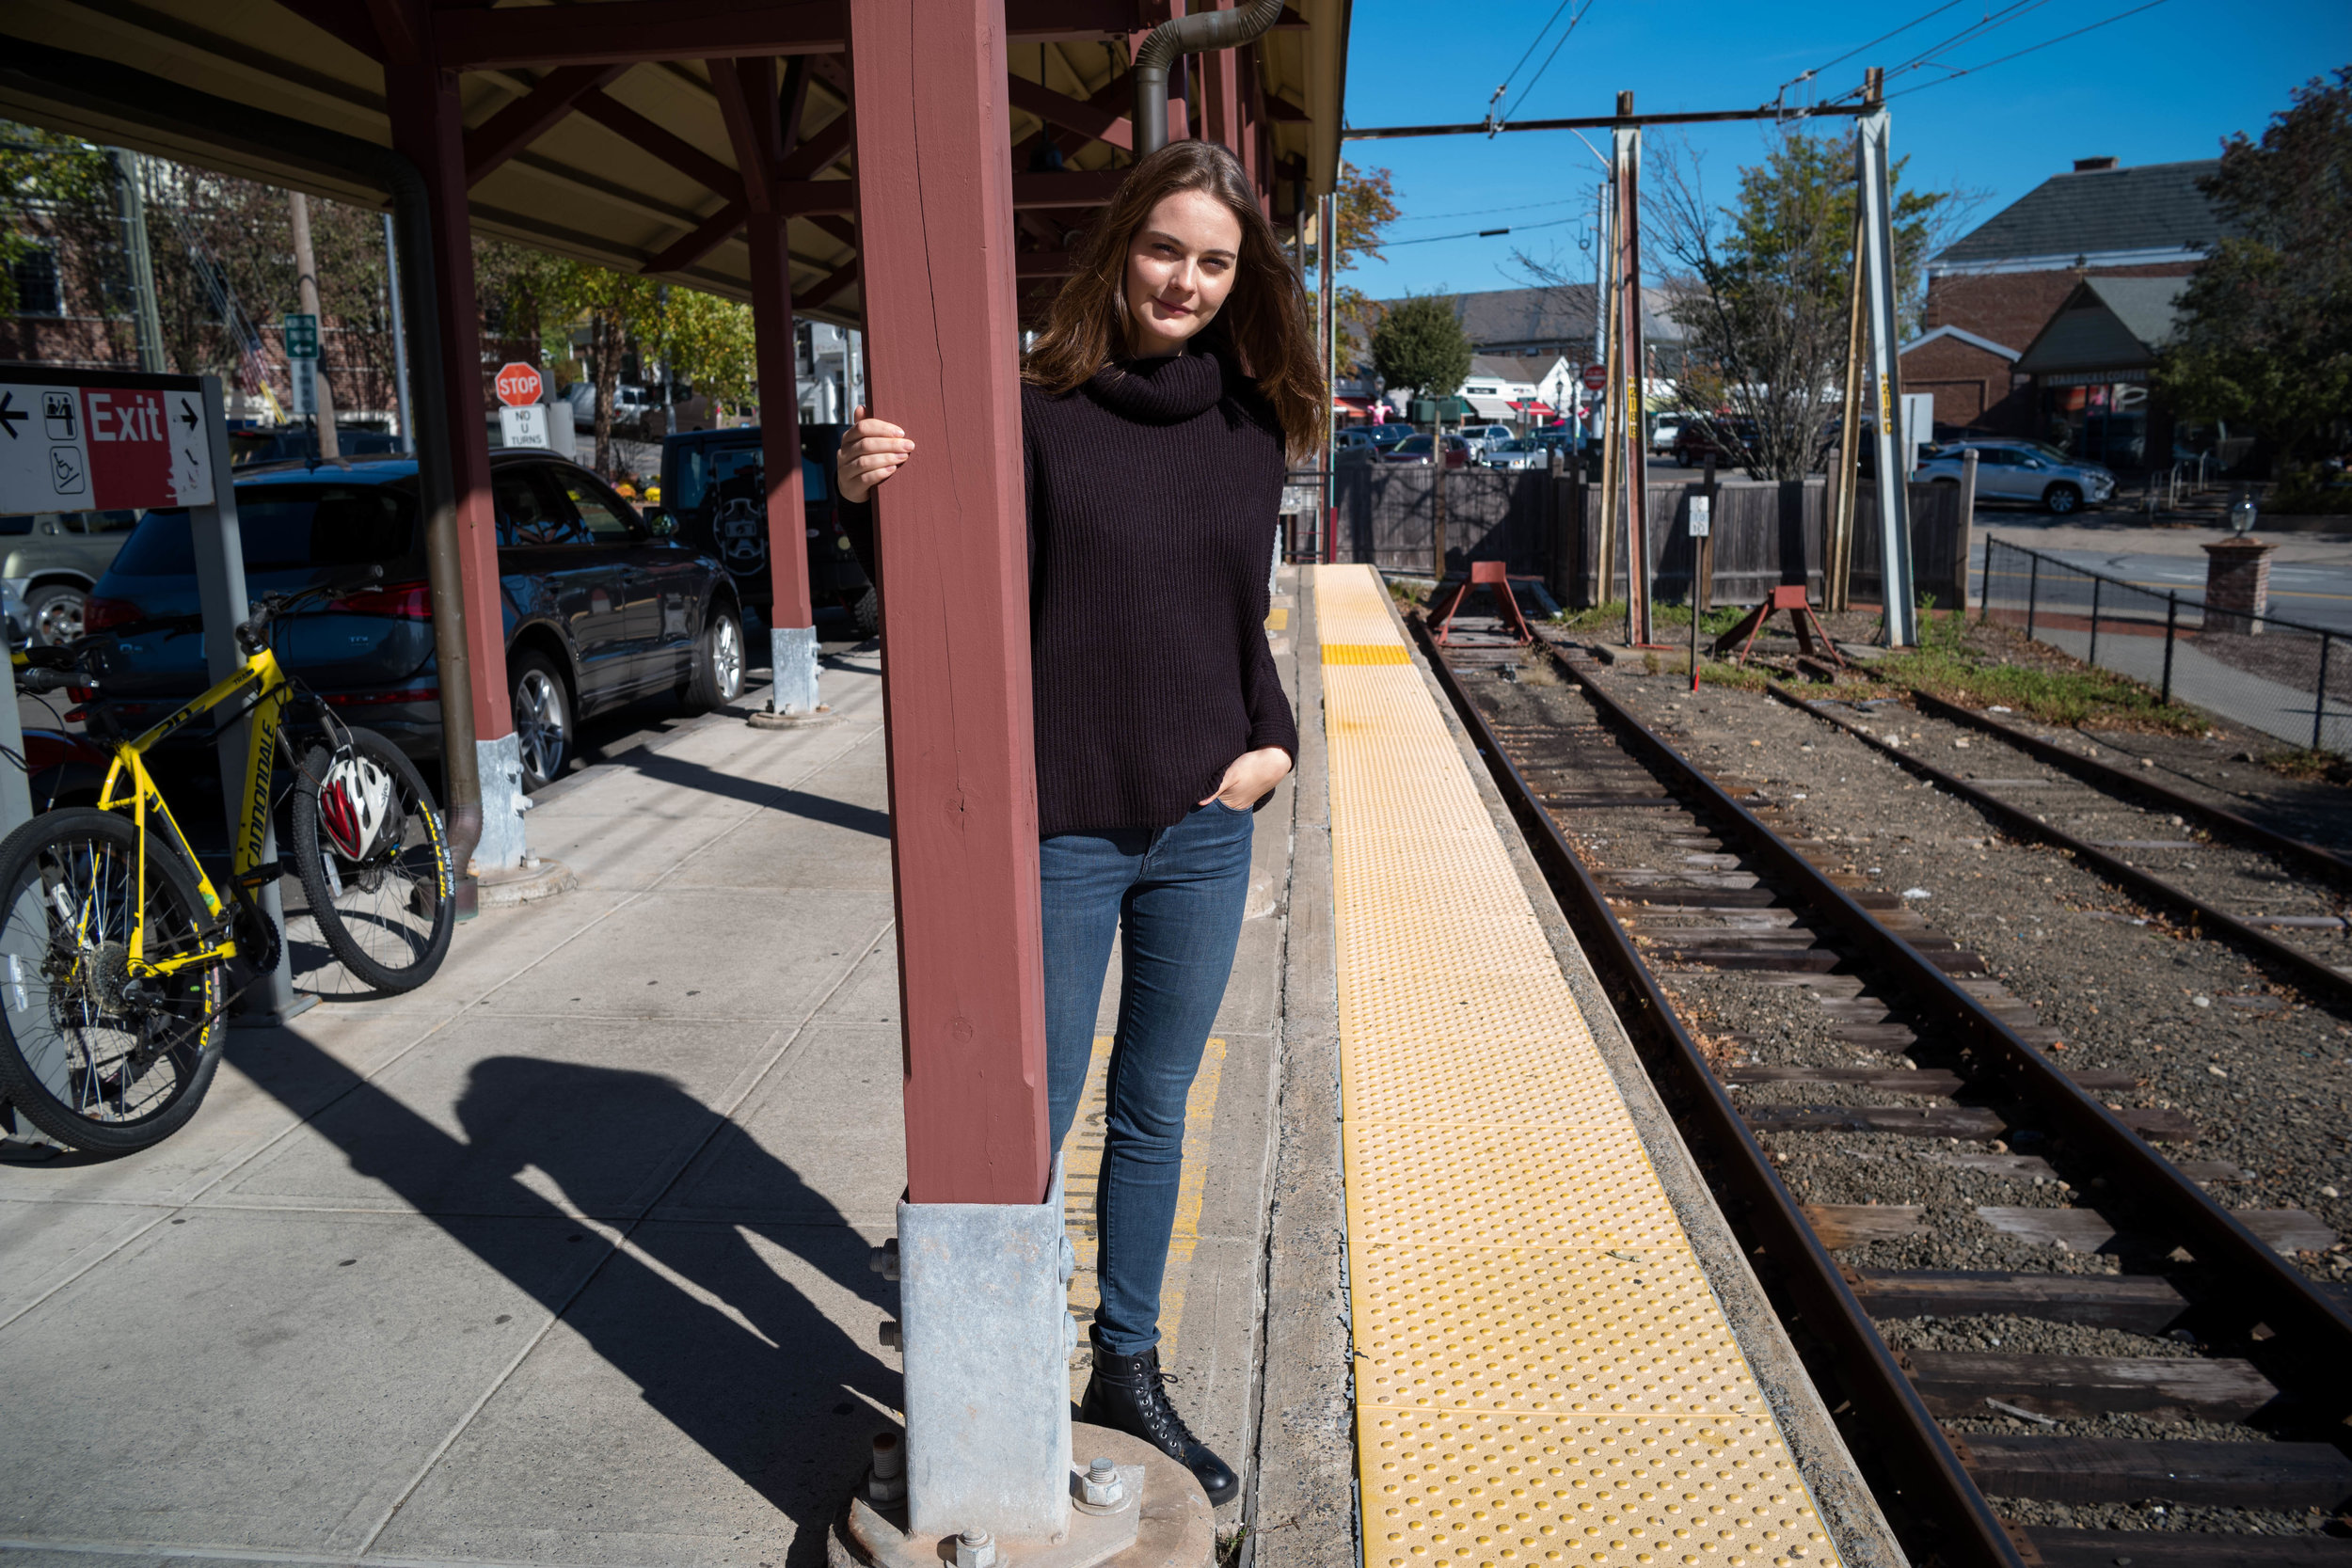 At the Train Station, New Canaan, Connecticut.